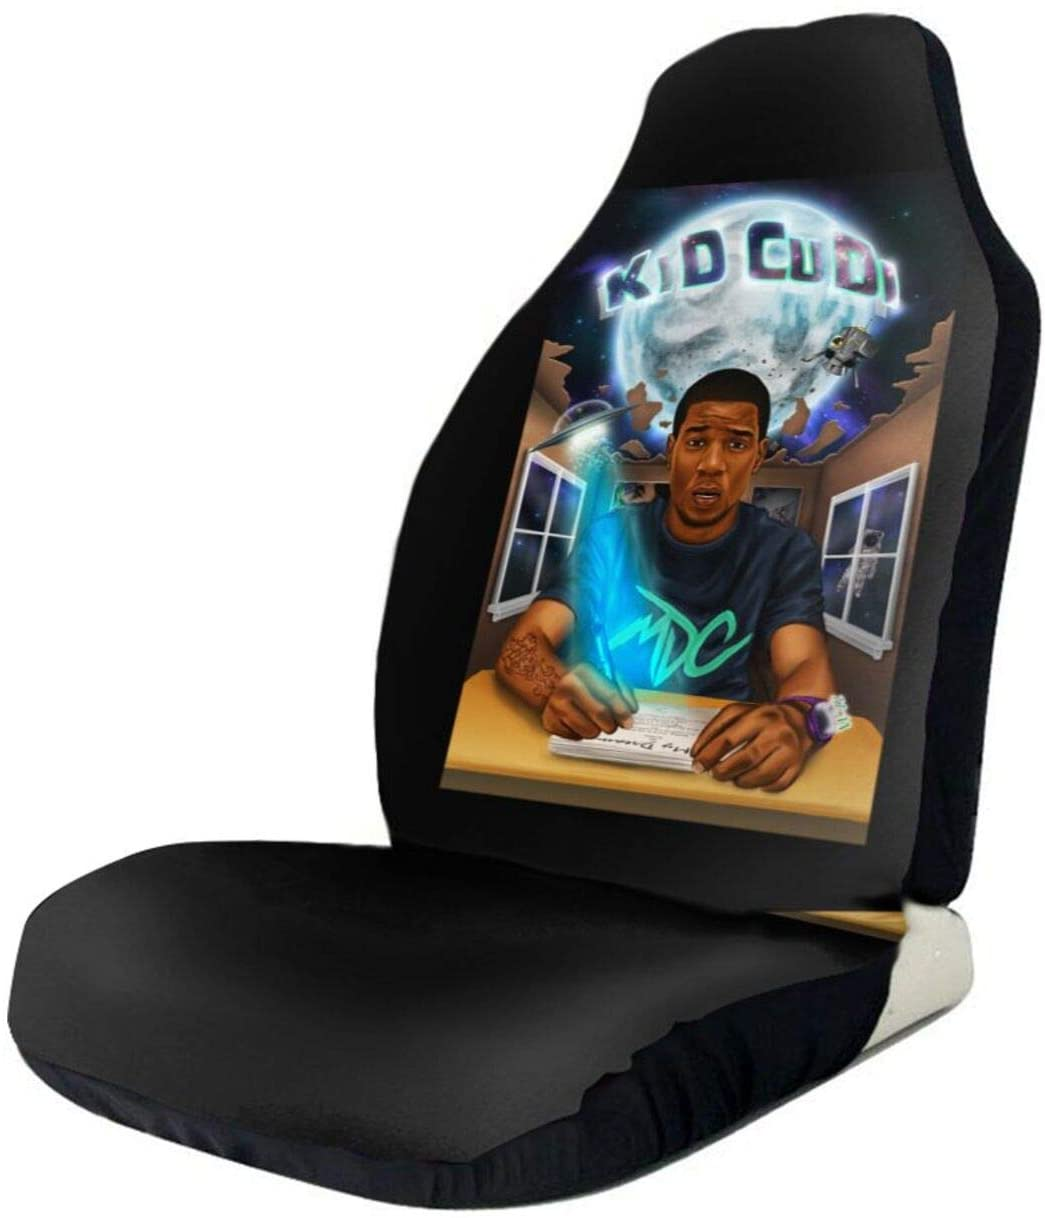 Majunnn Kid-Cudi Fashion Stylish and Comfortable Car Seat Cover, Dirt-Resistant and Washable